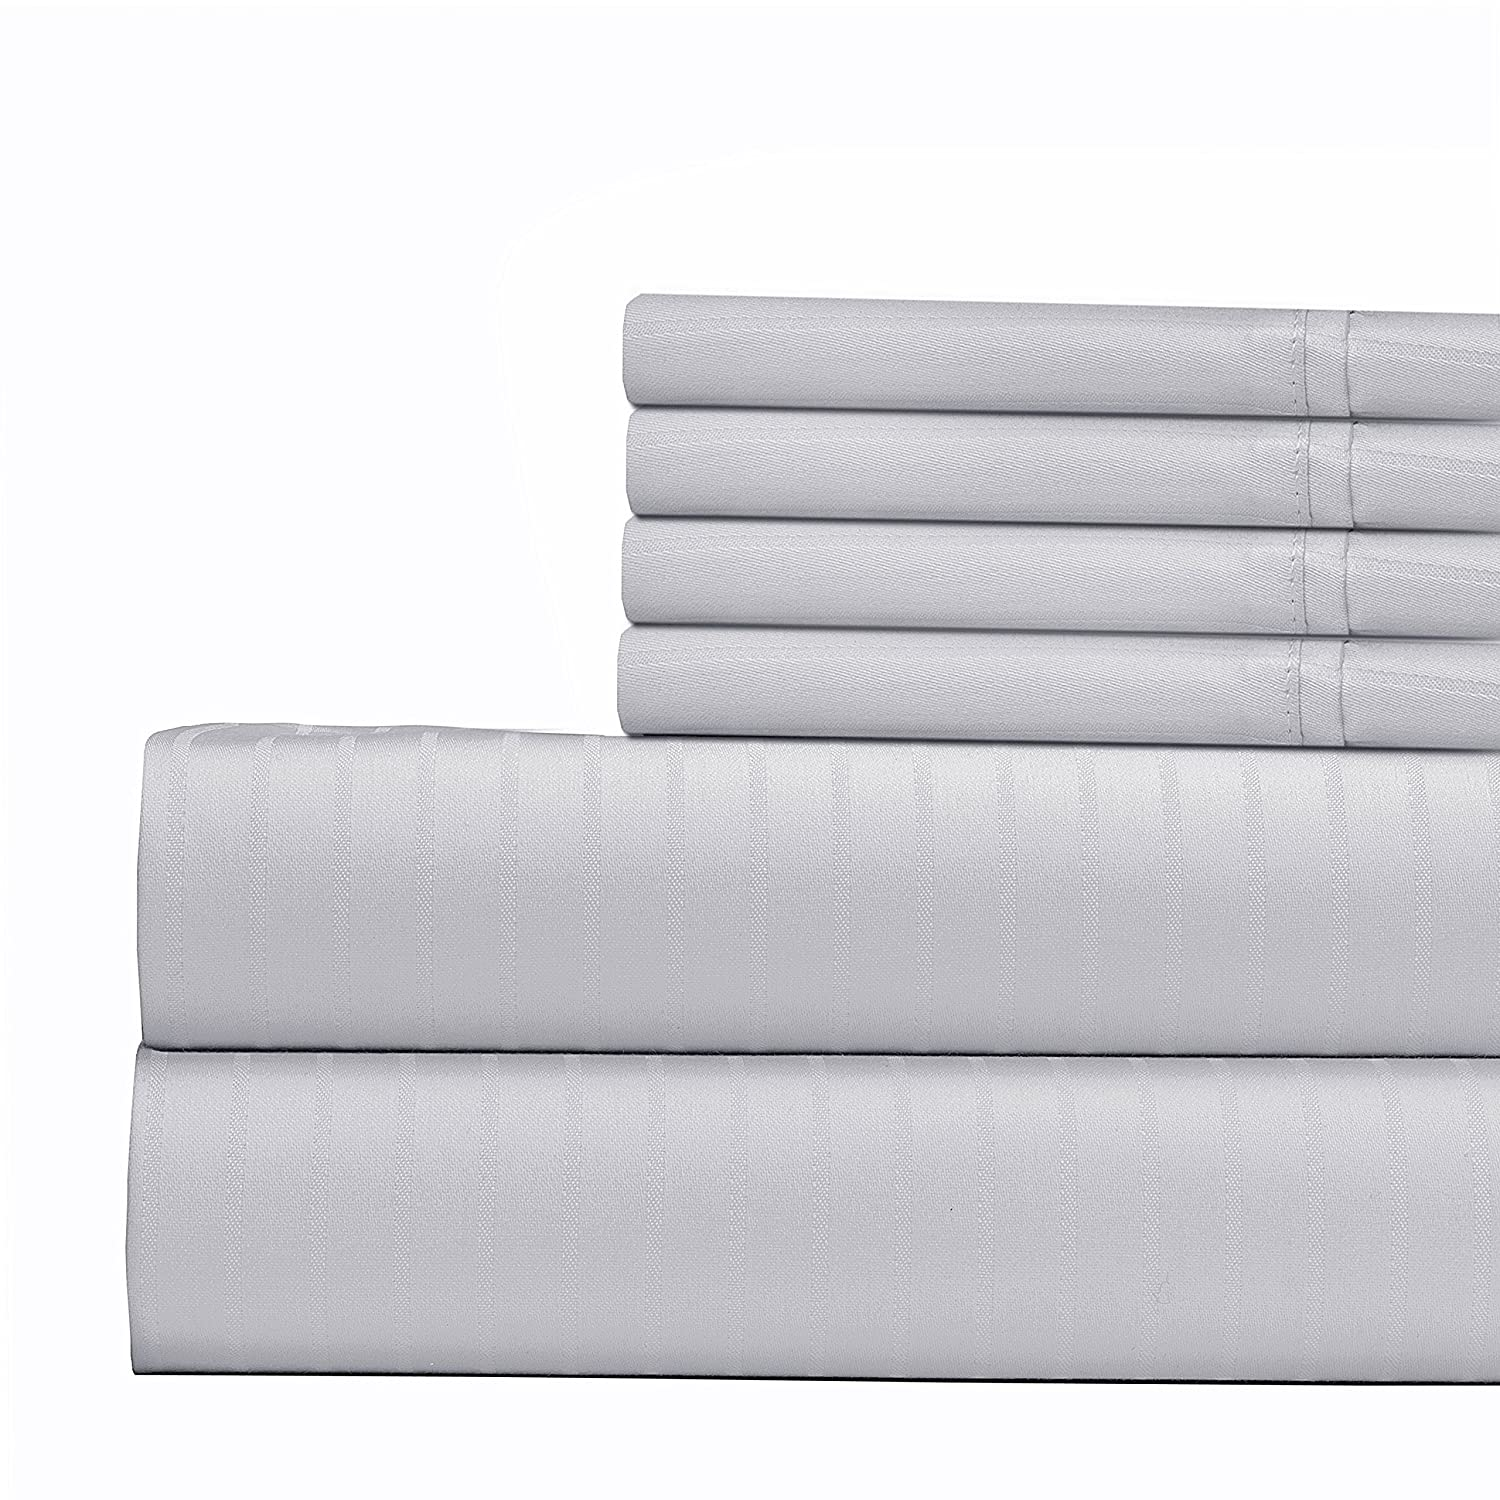 700 Thread Count Cotton-Poly Blend Bed Sheet Hotel Quality Sheet Set with 2 Extra Bonus Pillow Cases Full 15 inch Elastic Deep Pocket Fitted Sheet Pin Stripe 6 Piece Bedding Sheet Set Blue PIN-700-BONS-FL-BLUE